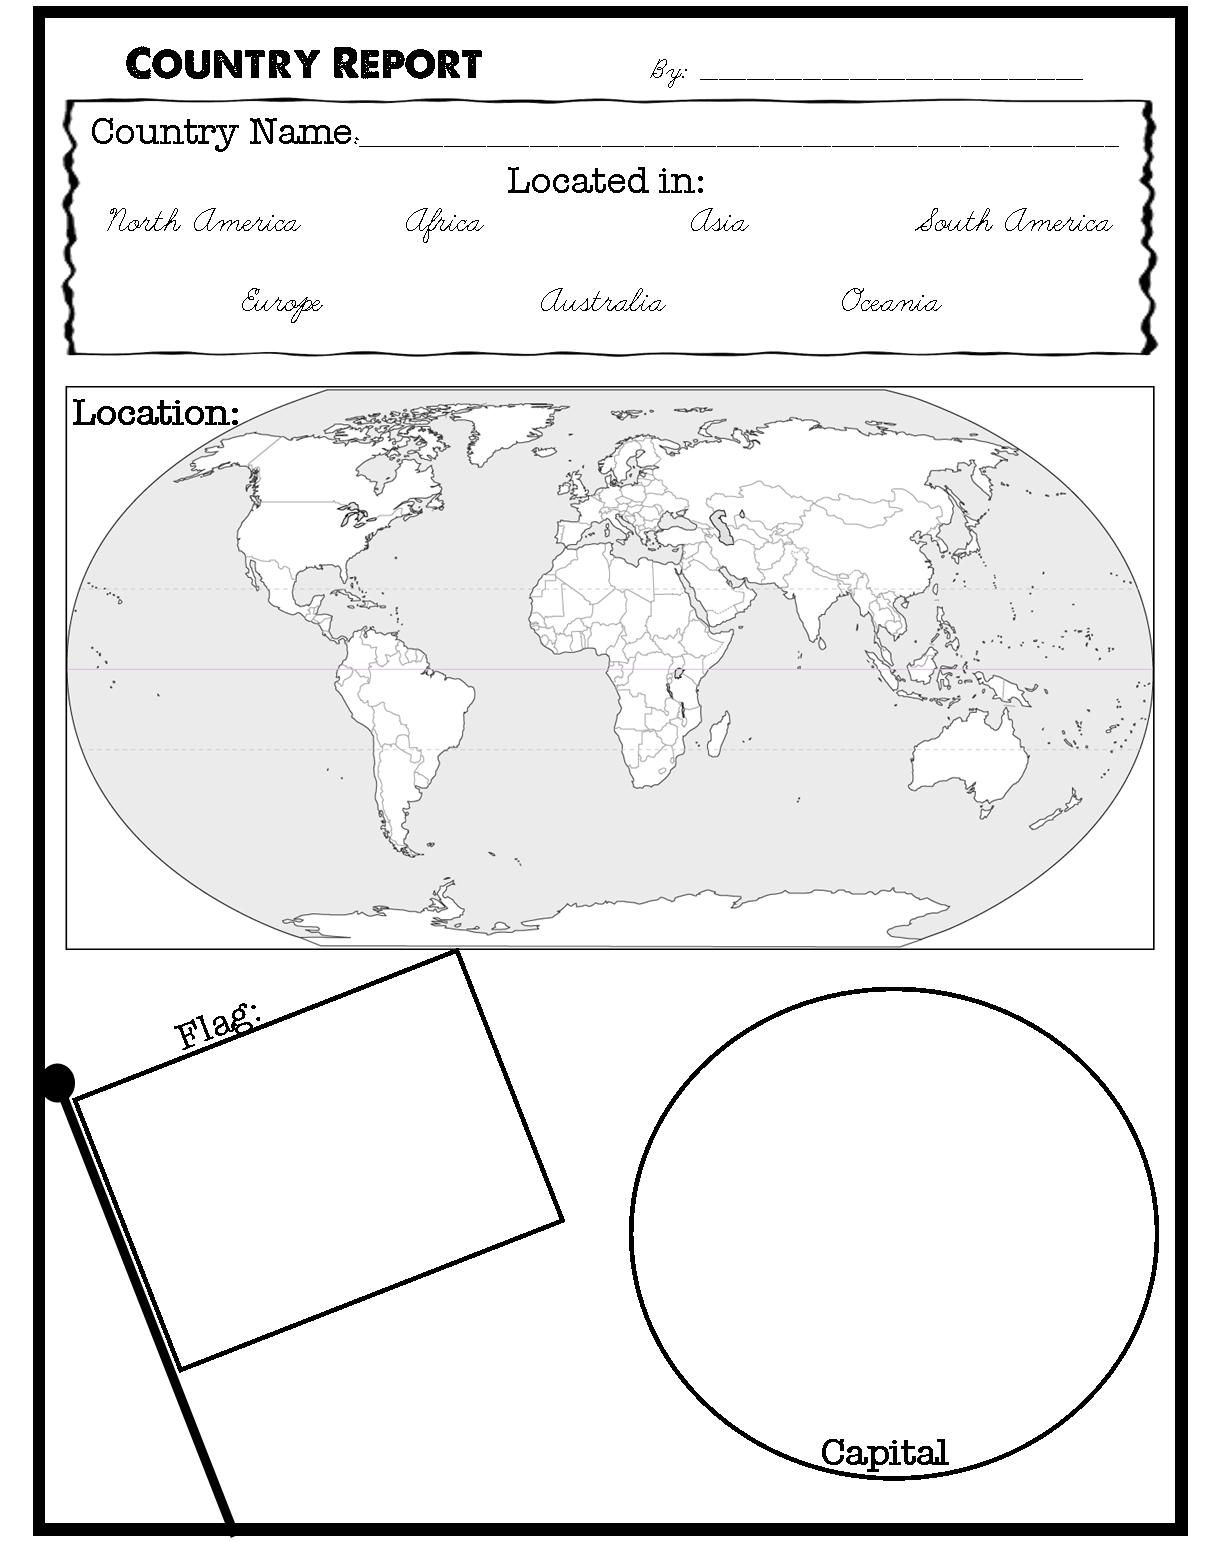 country report printable